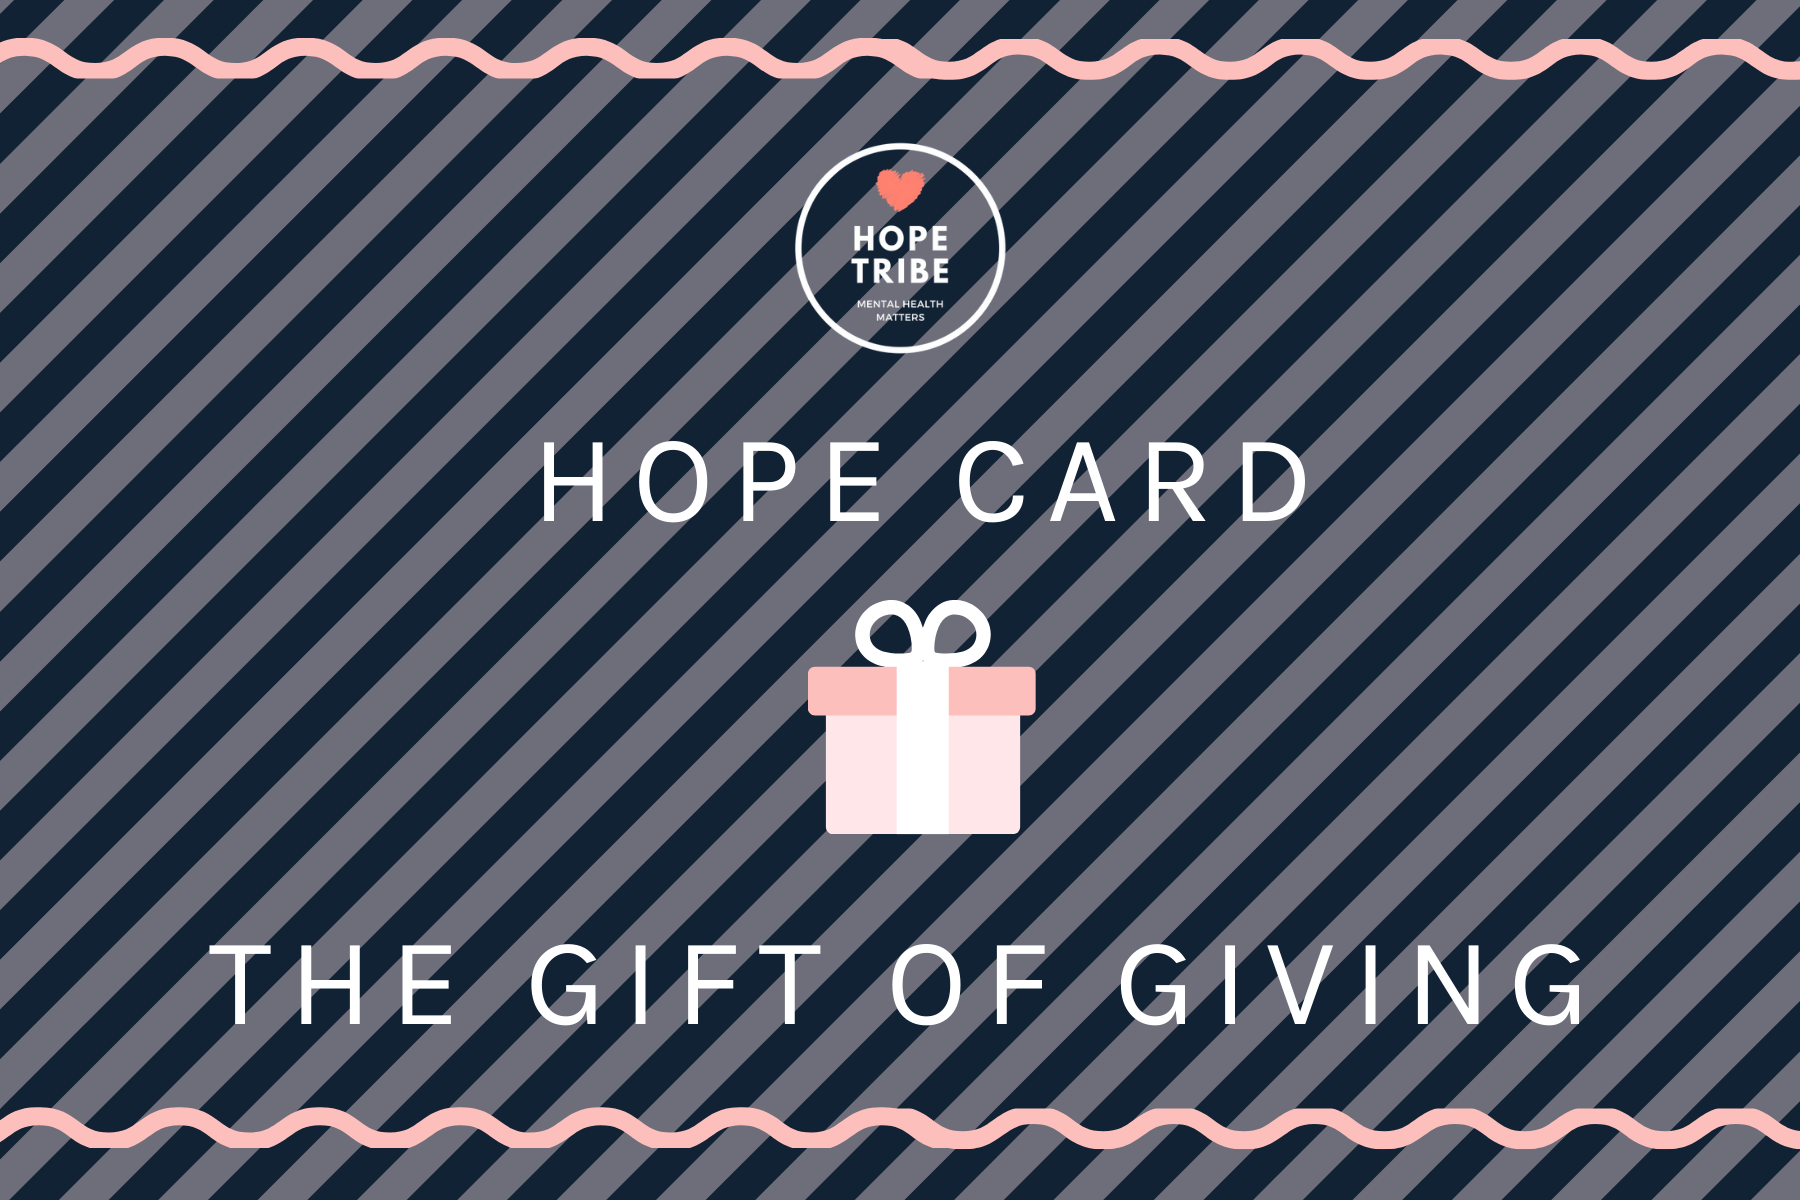 Hope Card - The Gift Of Giving